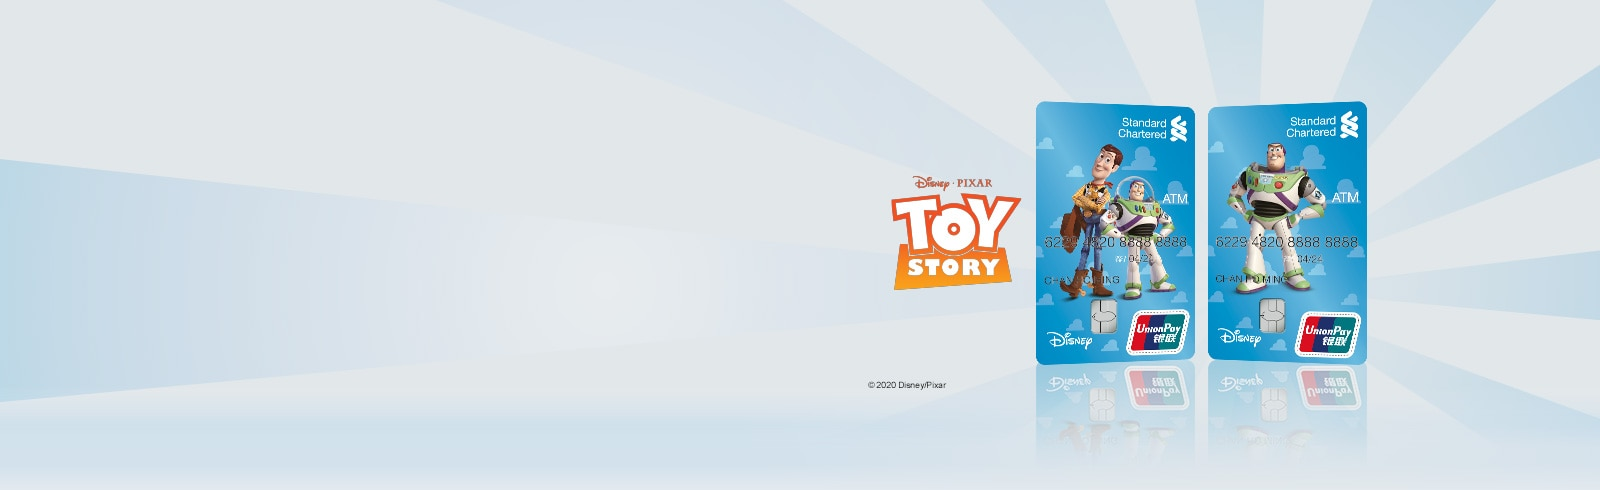 Standard Chartered toy story special promotion